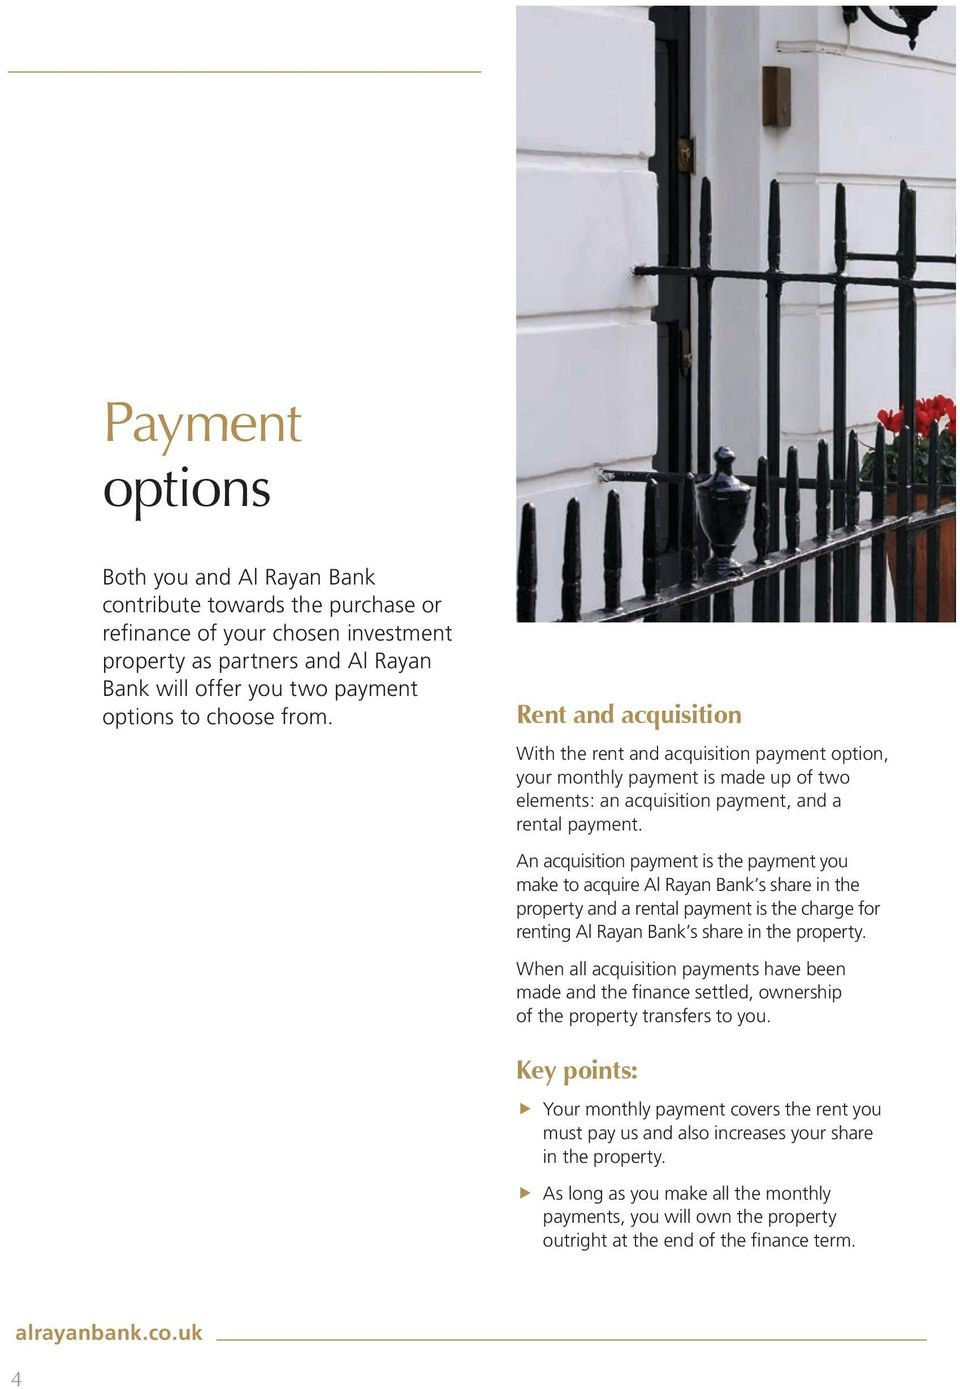 An acquisition payment is the payment you make to acquire Al Rayan Bank s share in the property and a rental payment is the charge for renting Al Rayan Bank s share in the property.